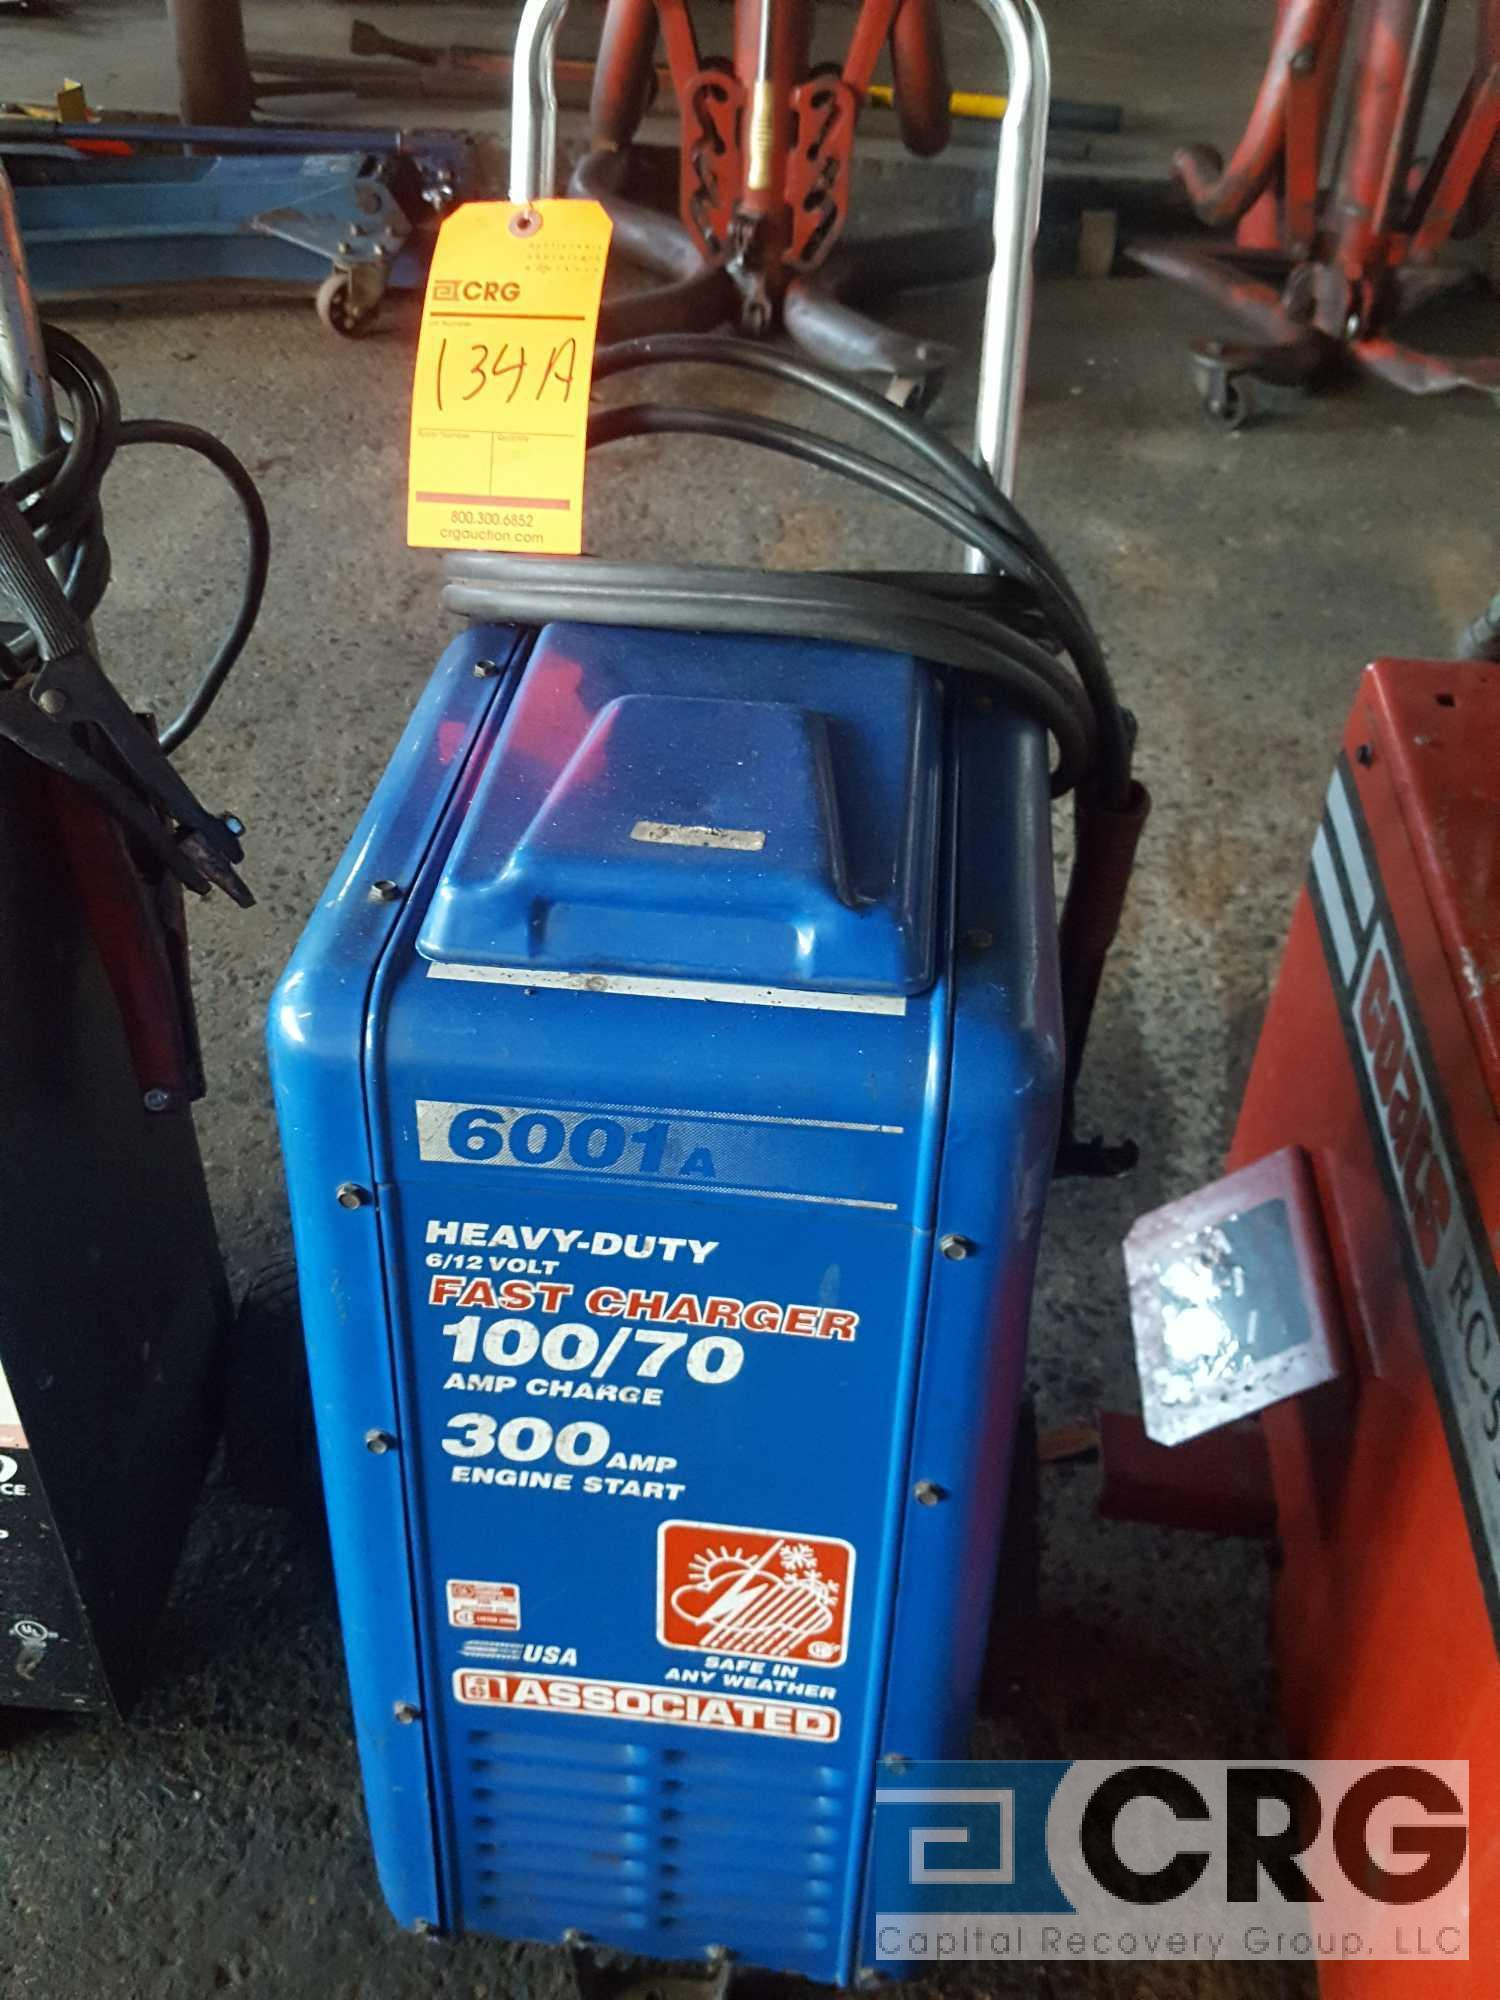 Associated battery charger model number 6001A